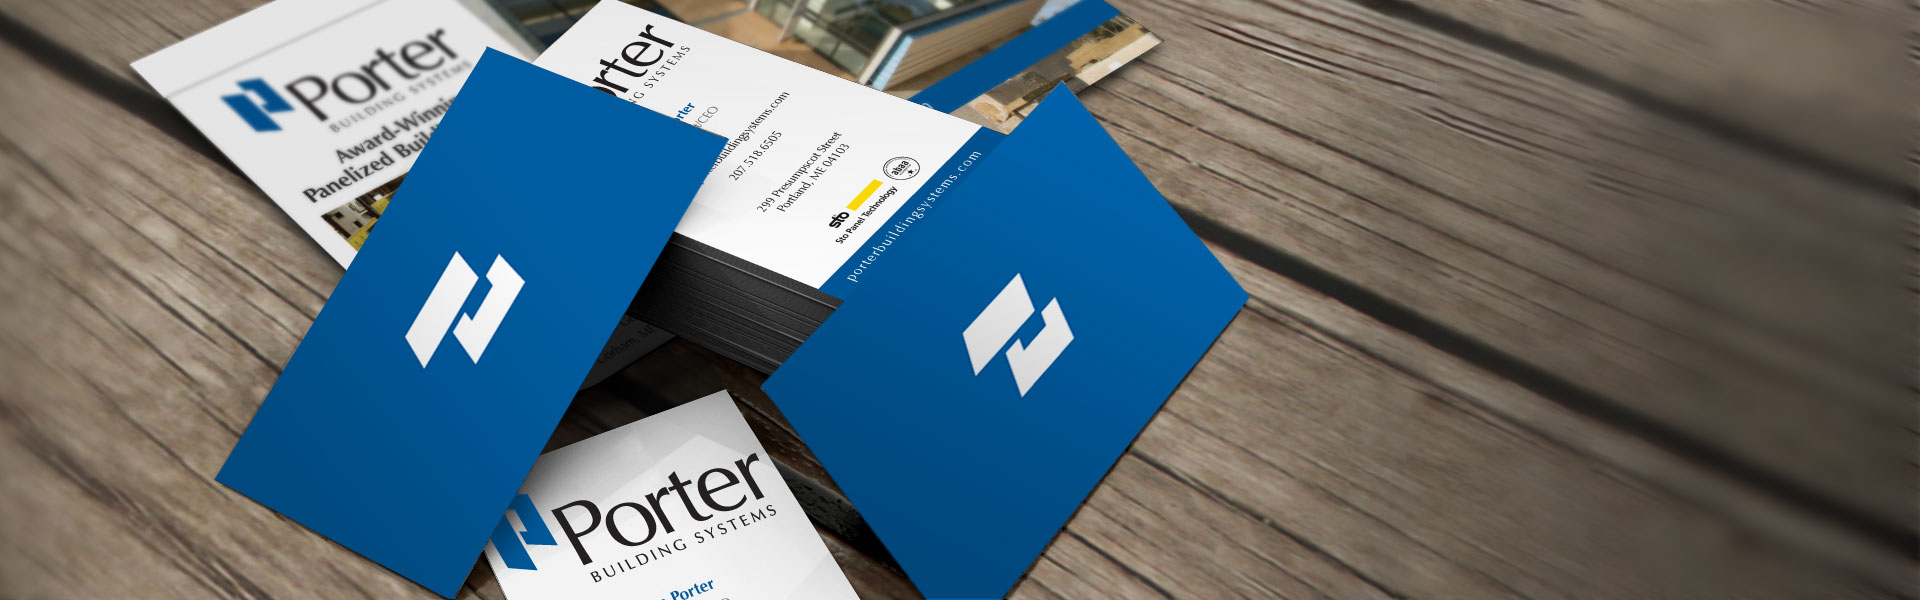 Porter Building Systems identity